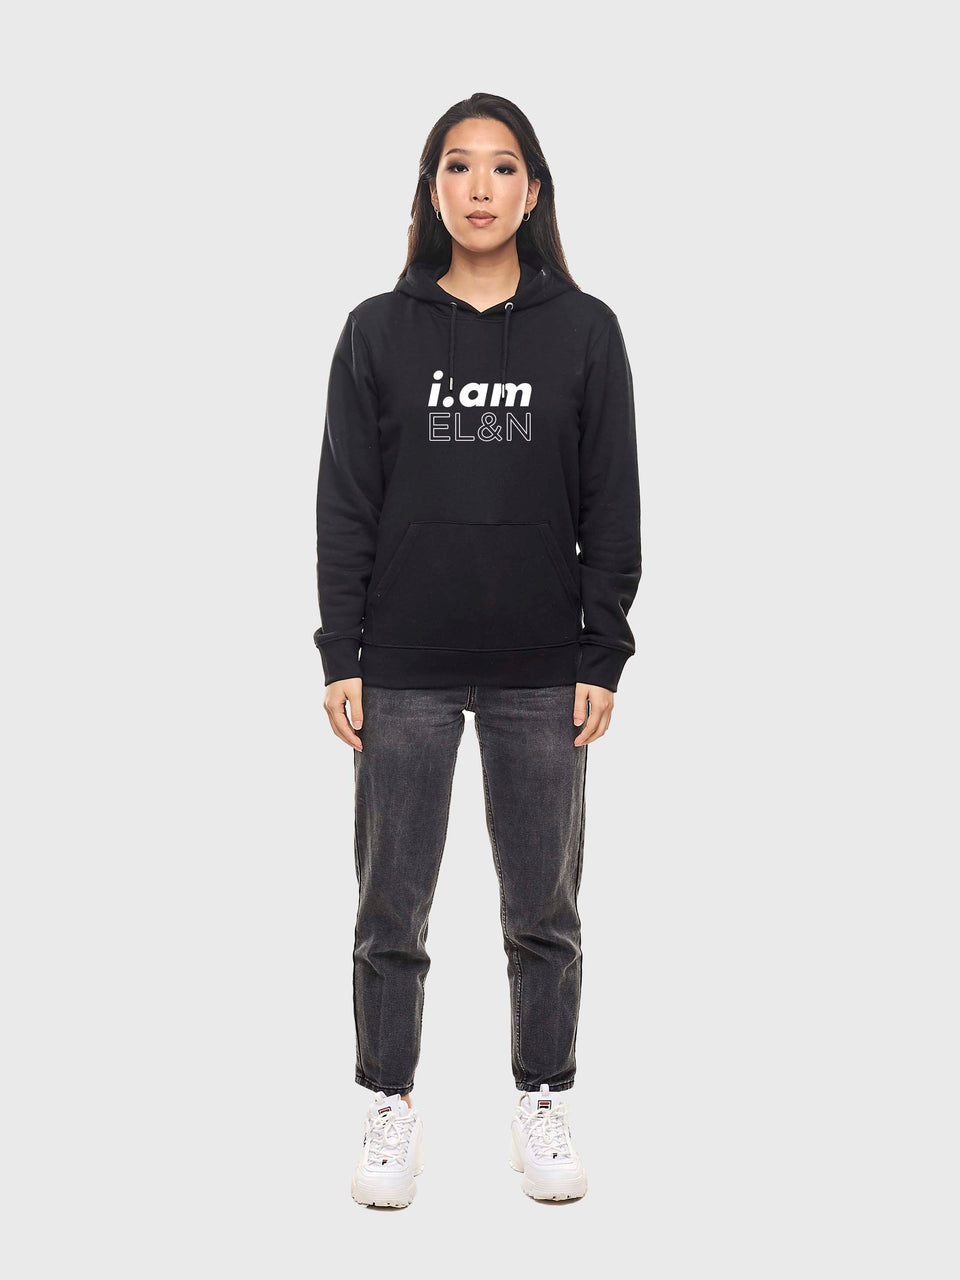 i.am EL&N - Black / Navy - Unisex pull over hoodie